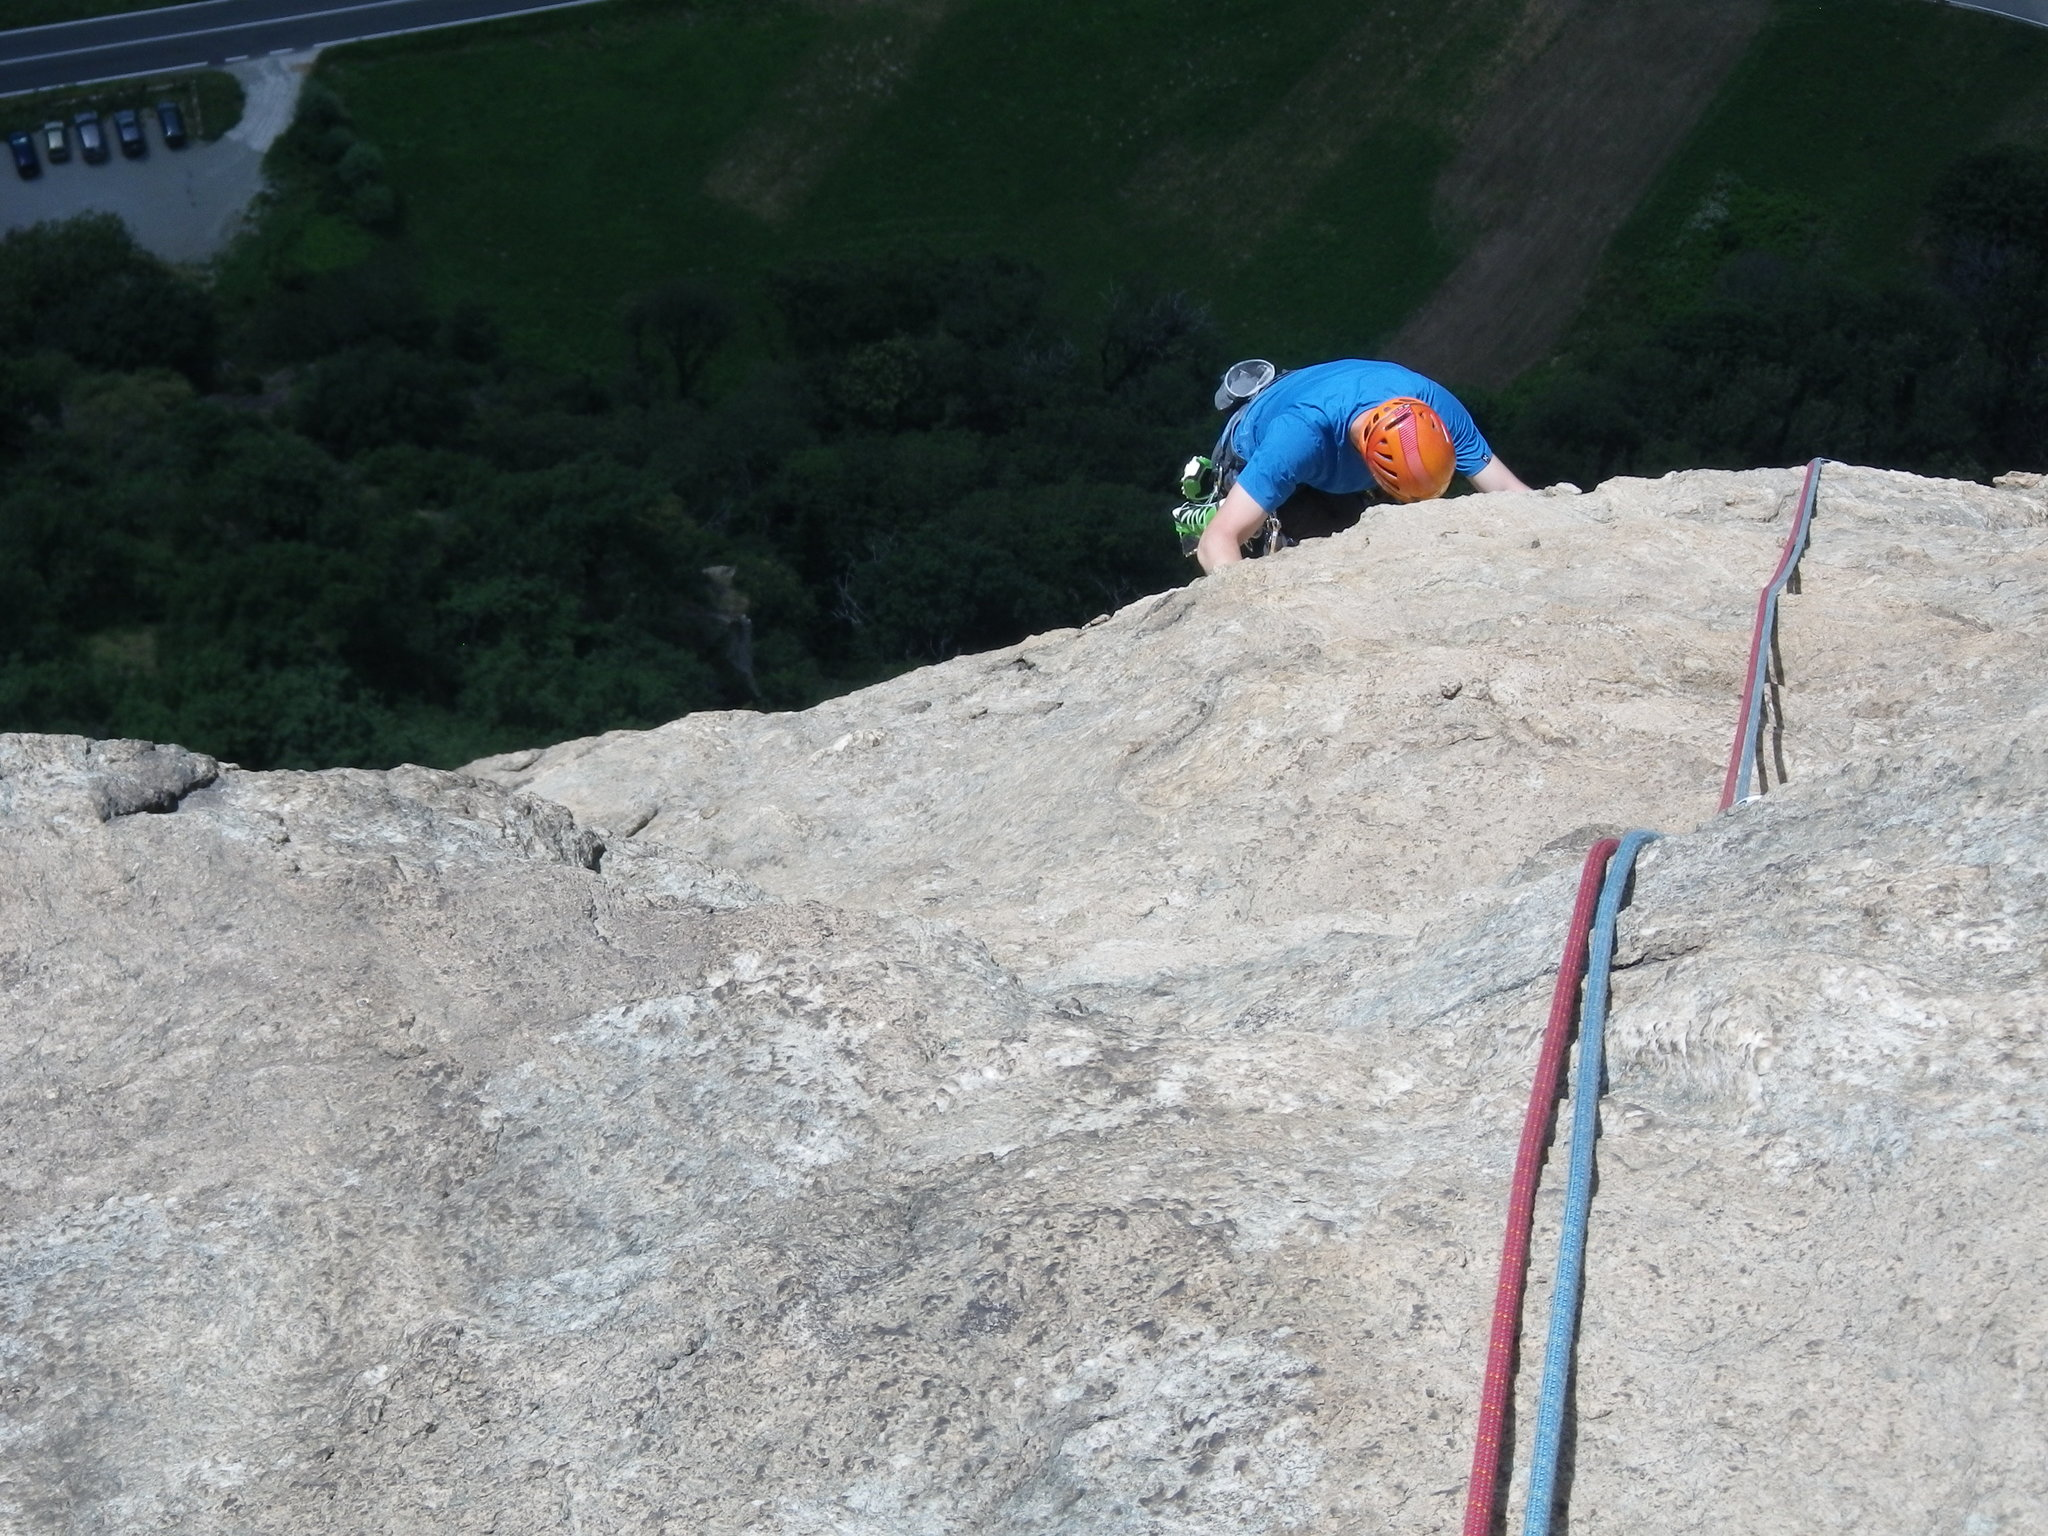 Sport climbing in the Alps using twin ropes